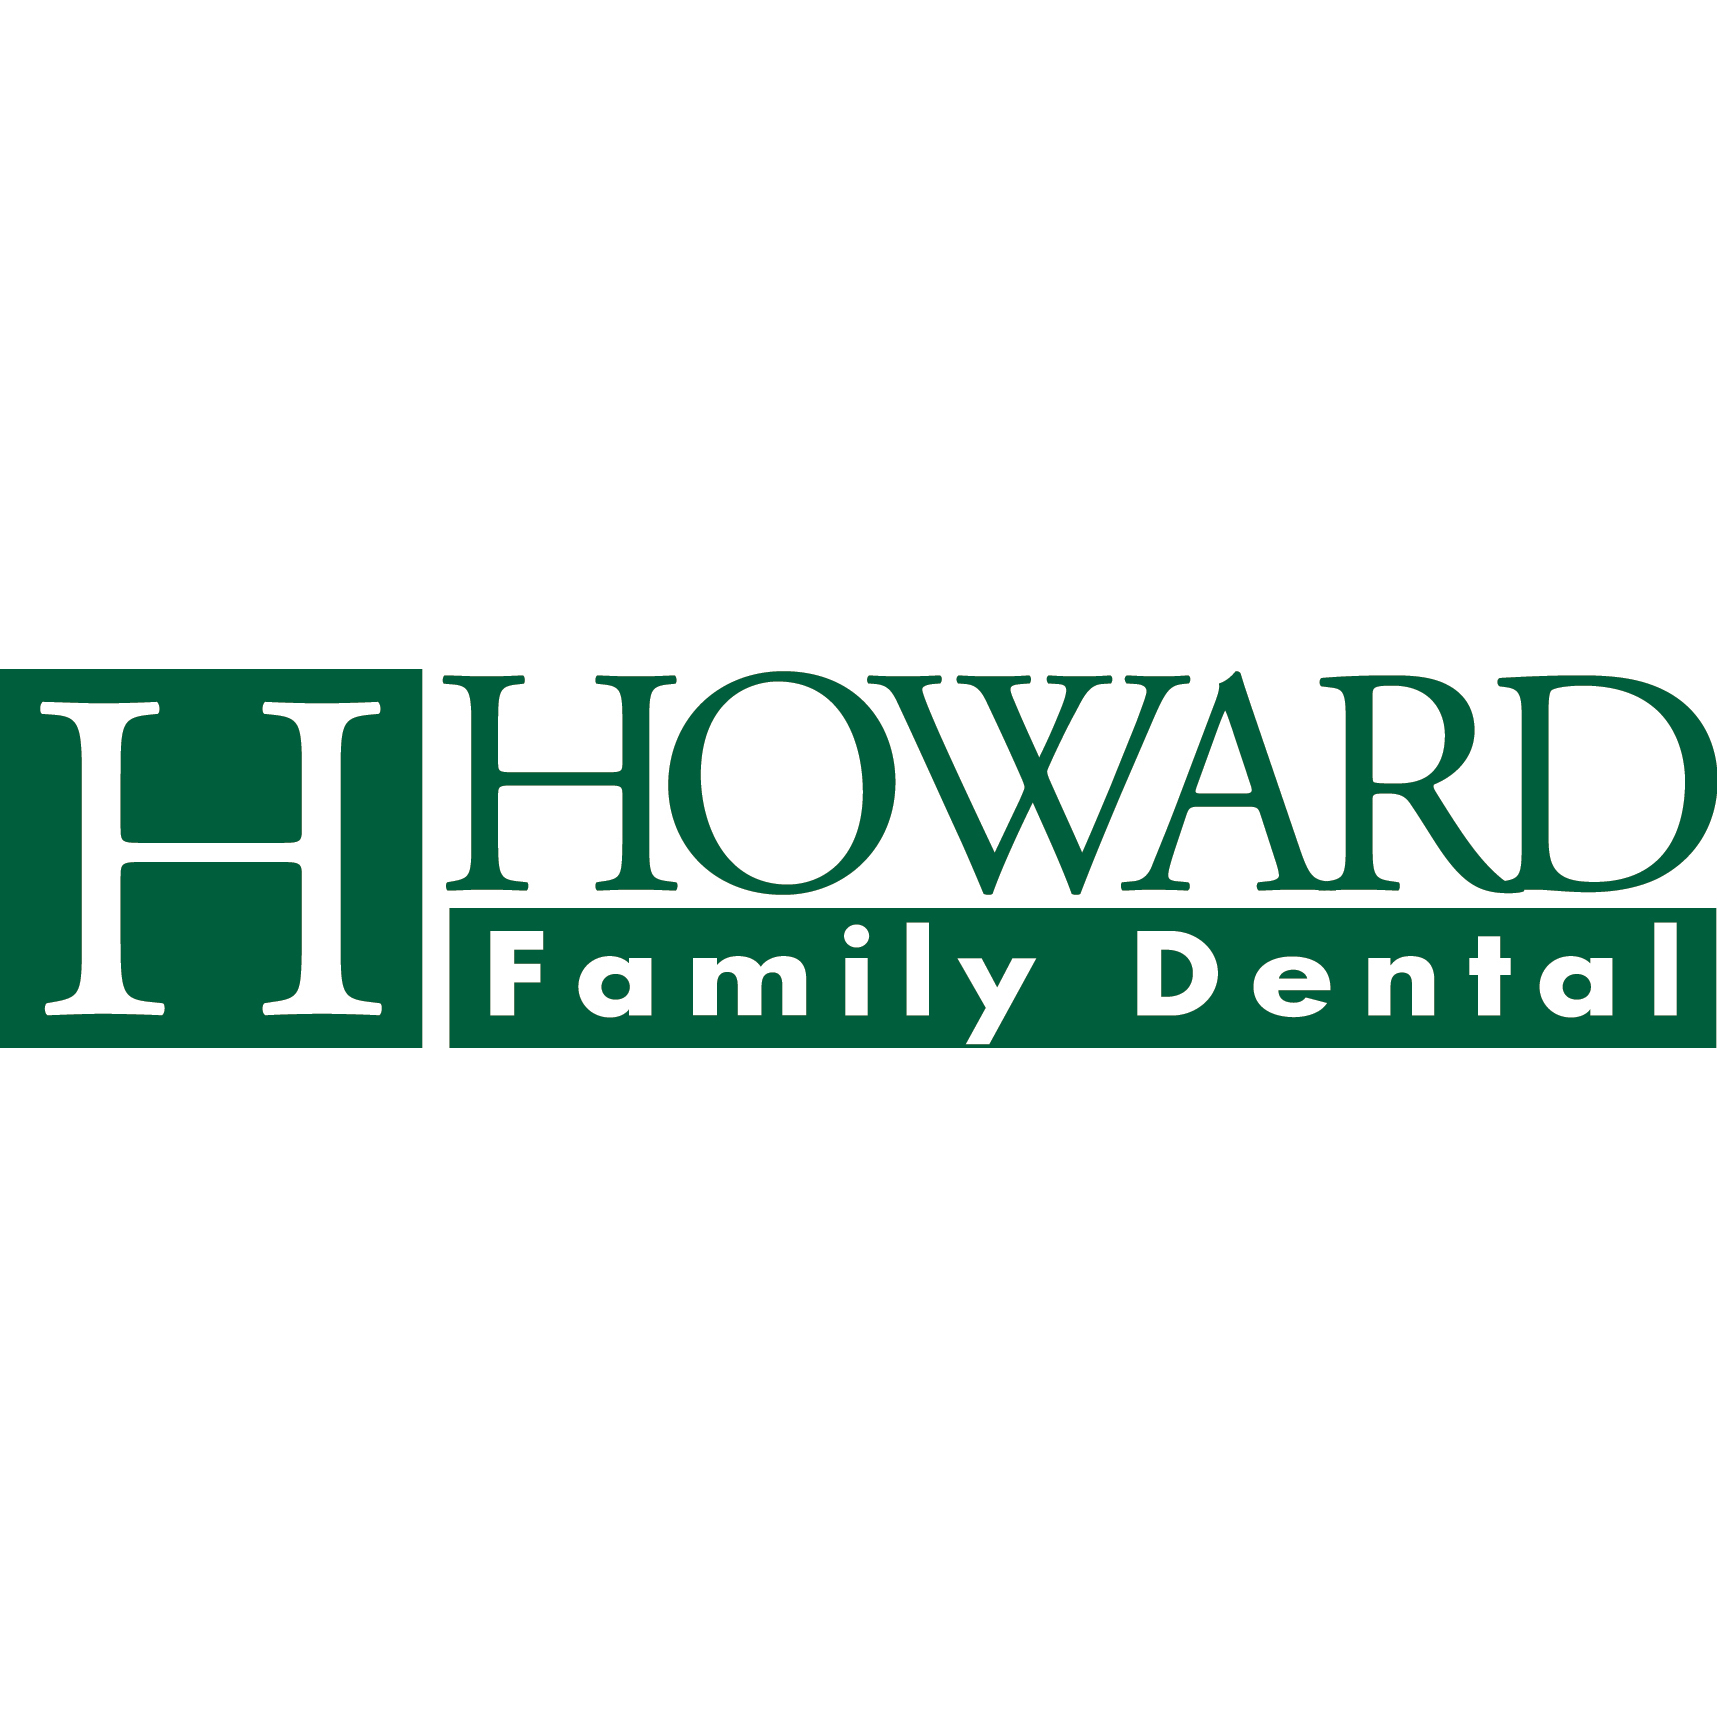 Howard Family Dental - Statesboro, GA - Dentists & Dental Services